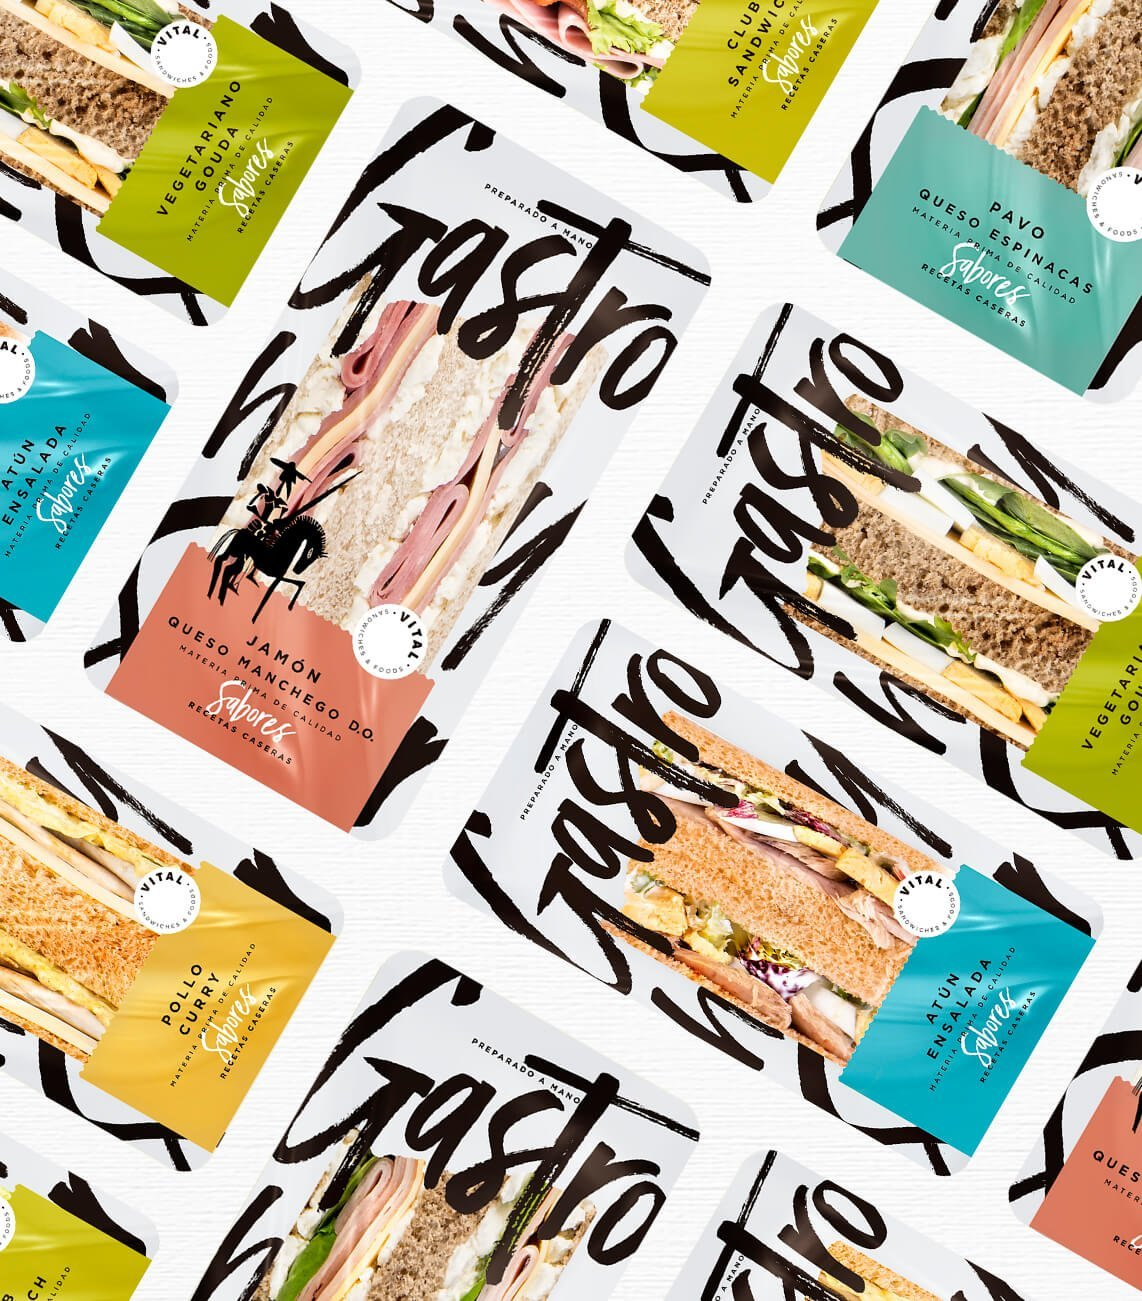 packaging-surtido-linea-gastro-calidad-foodie-vitalsandwiches-and-foods